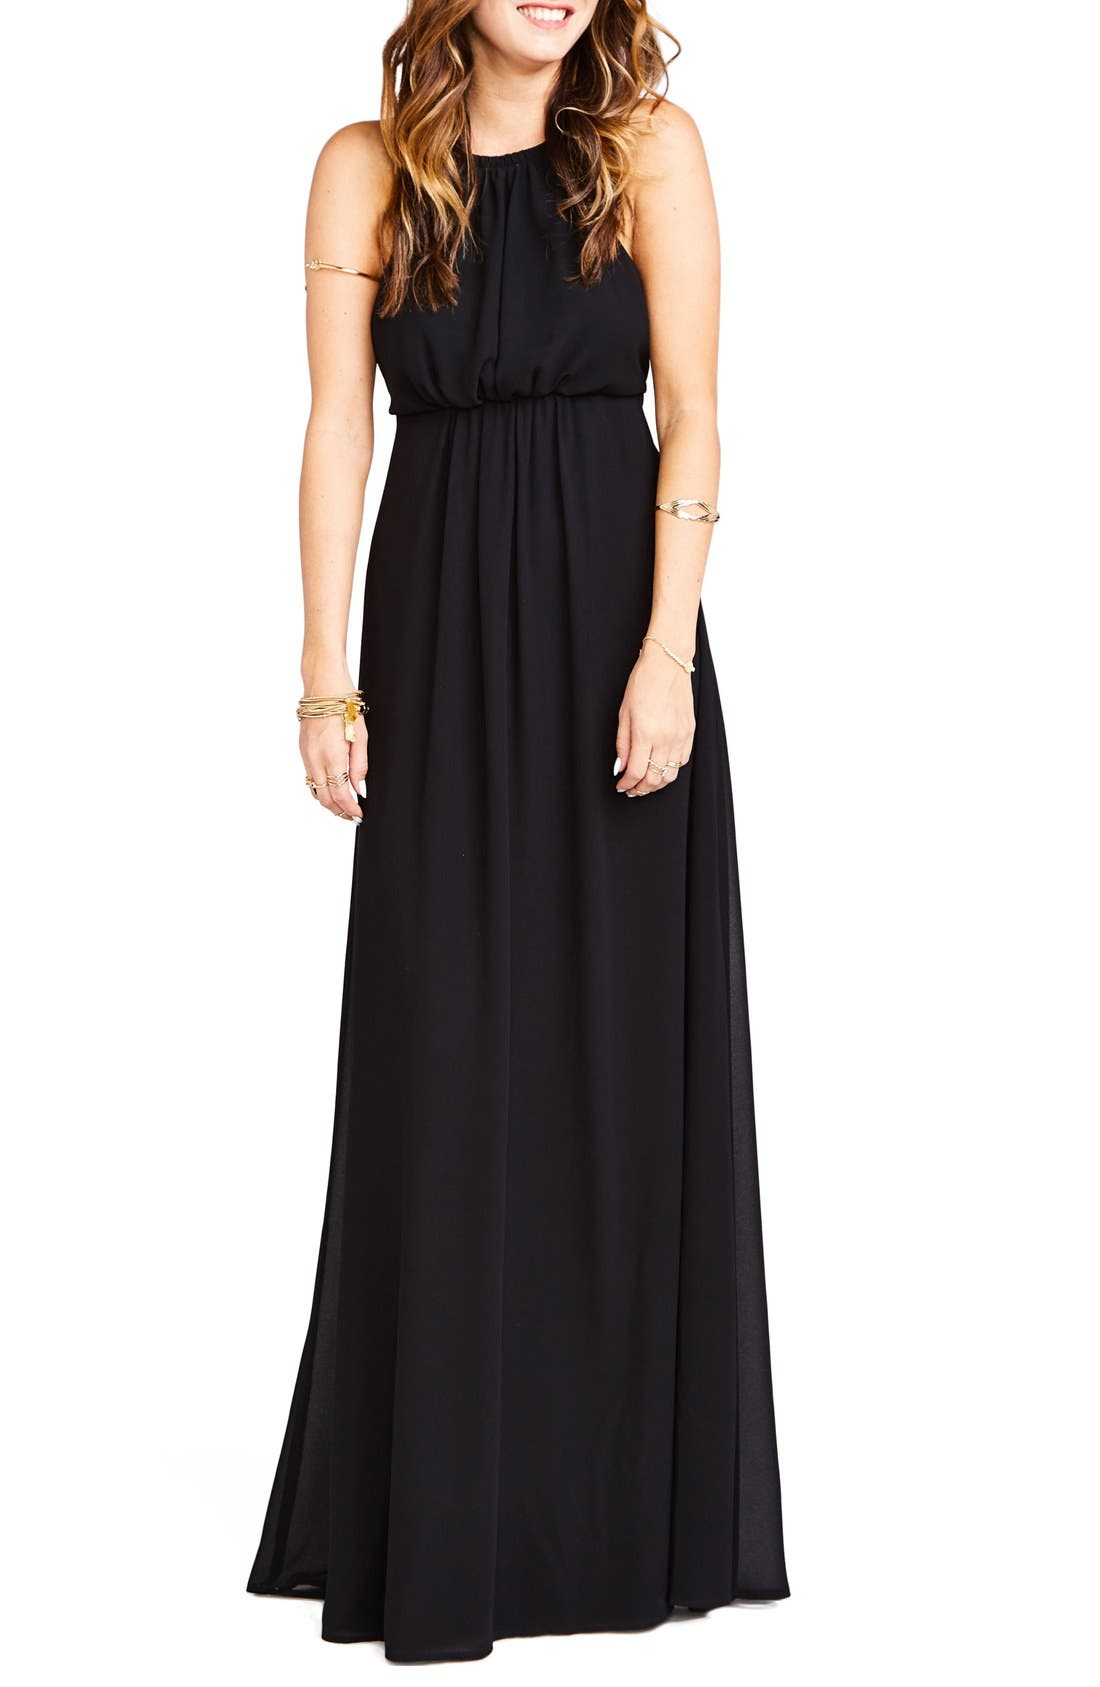 Amanda Open Back Blouson Gown,                             Main thumbnail 1, color,                             Black Chiffon